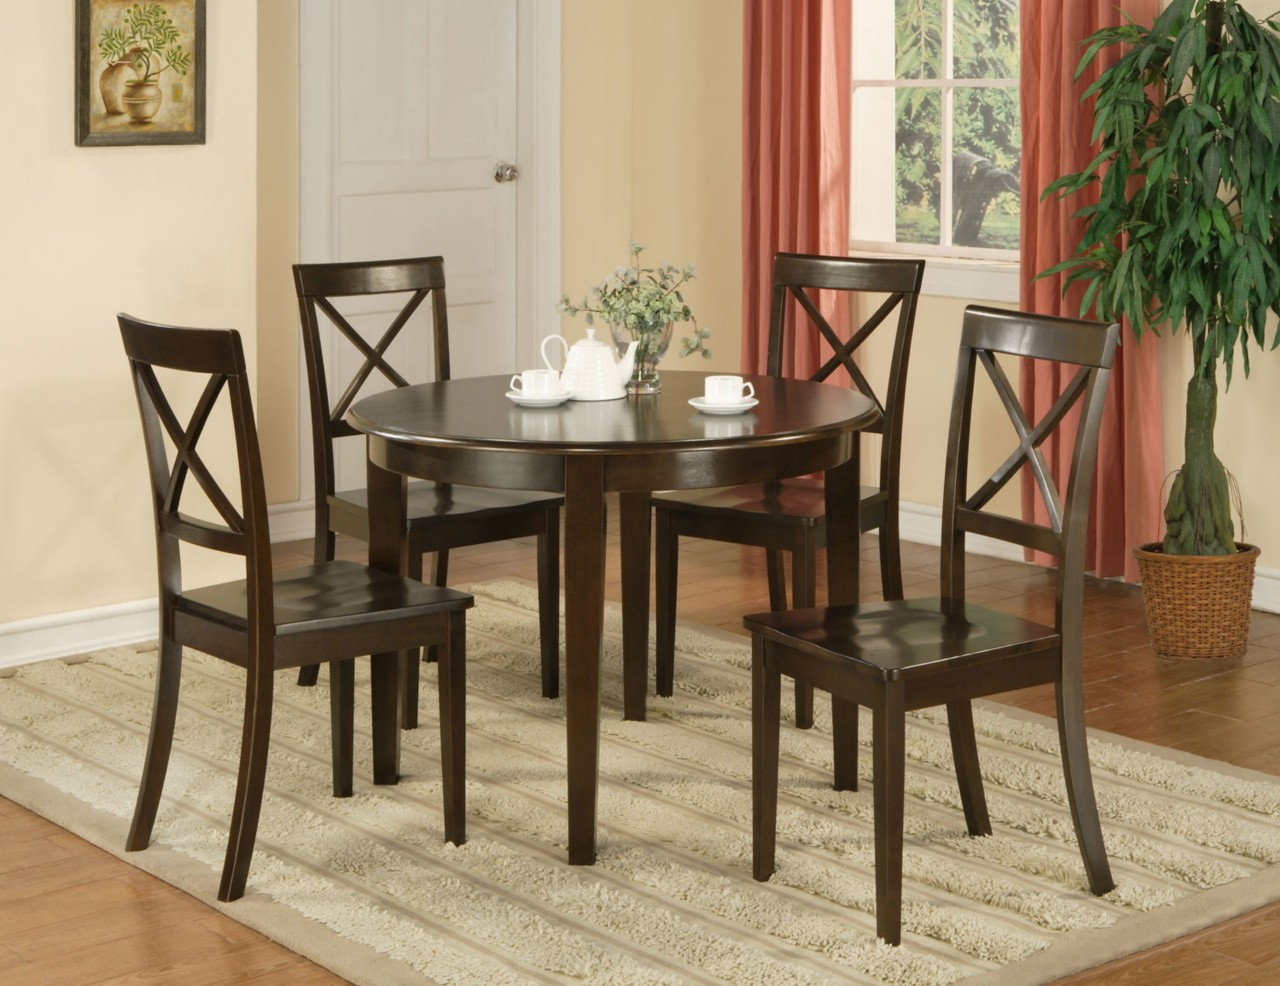 round dining tables for 4 chairs set eva furniture round kitchen table set Dining Table